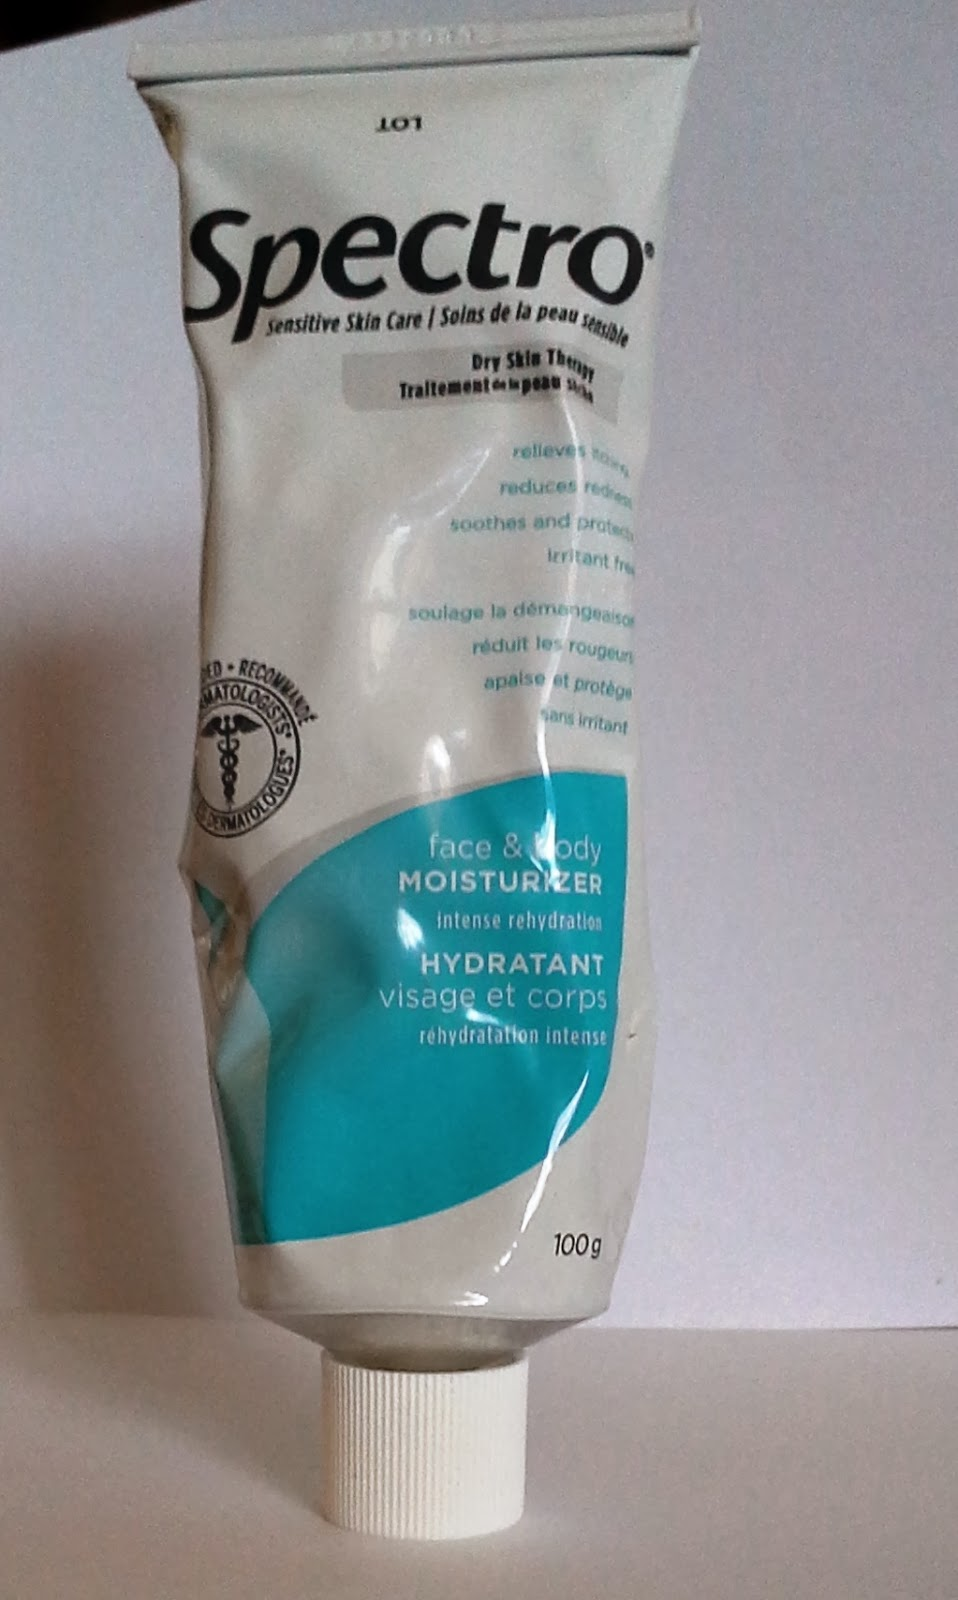 Spectro Dry Skin Therapy Cream Review from Melanie.Ps Blogger for The Purple Scarf Beauty Skincare